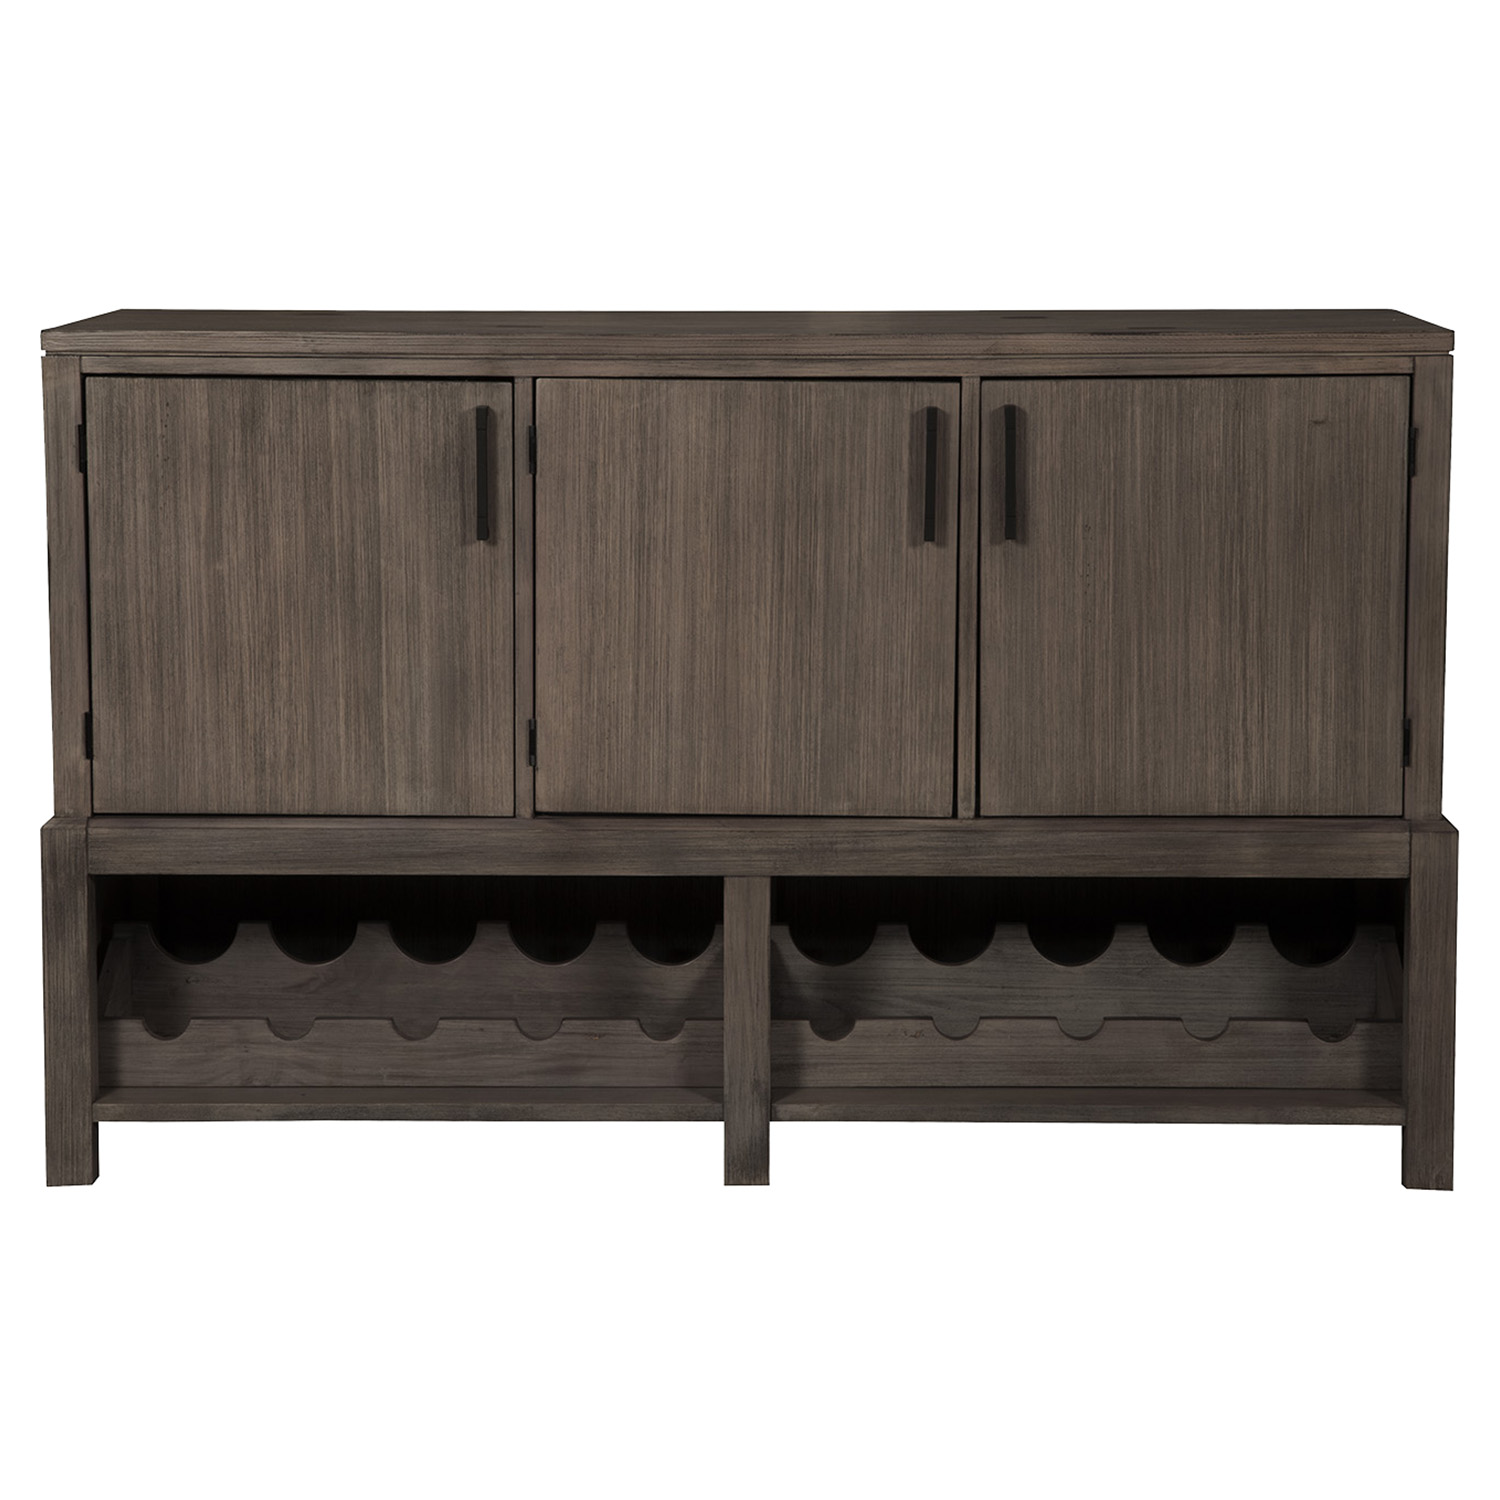 Fiji Sideboard - Wine Bottle Storage, Weathered Gray